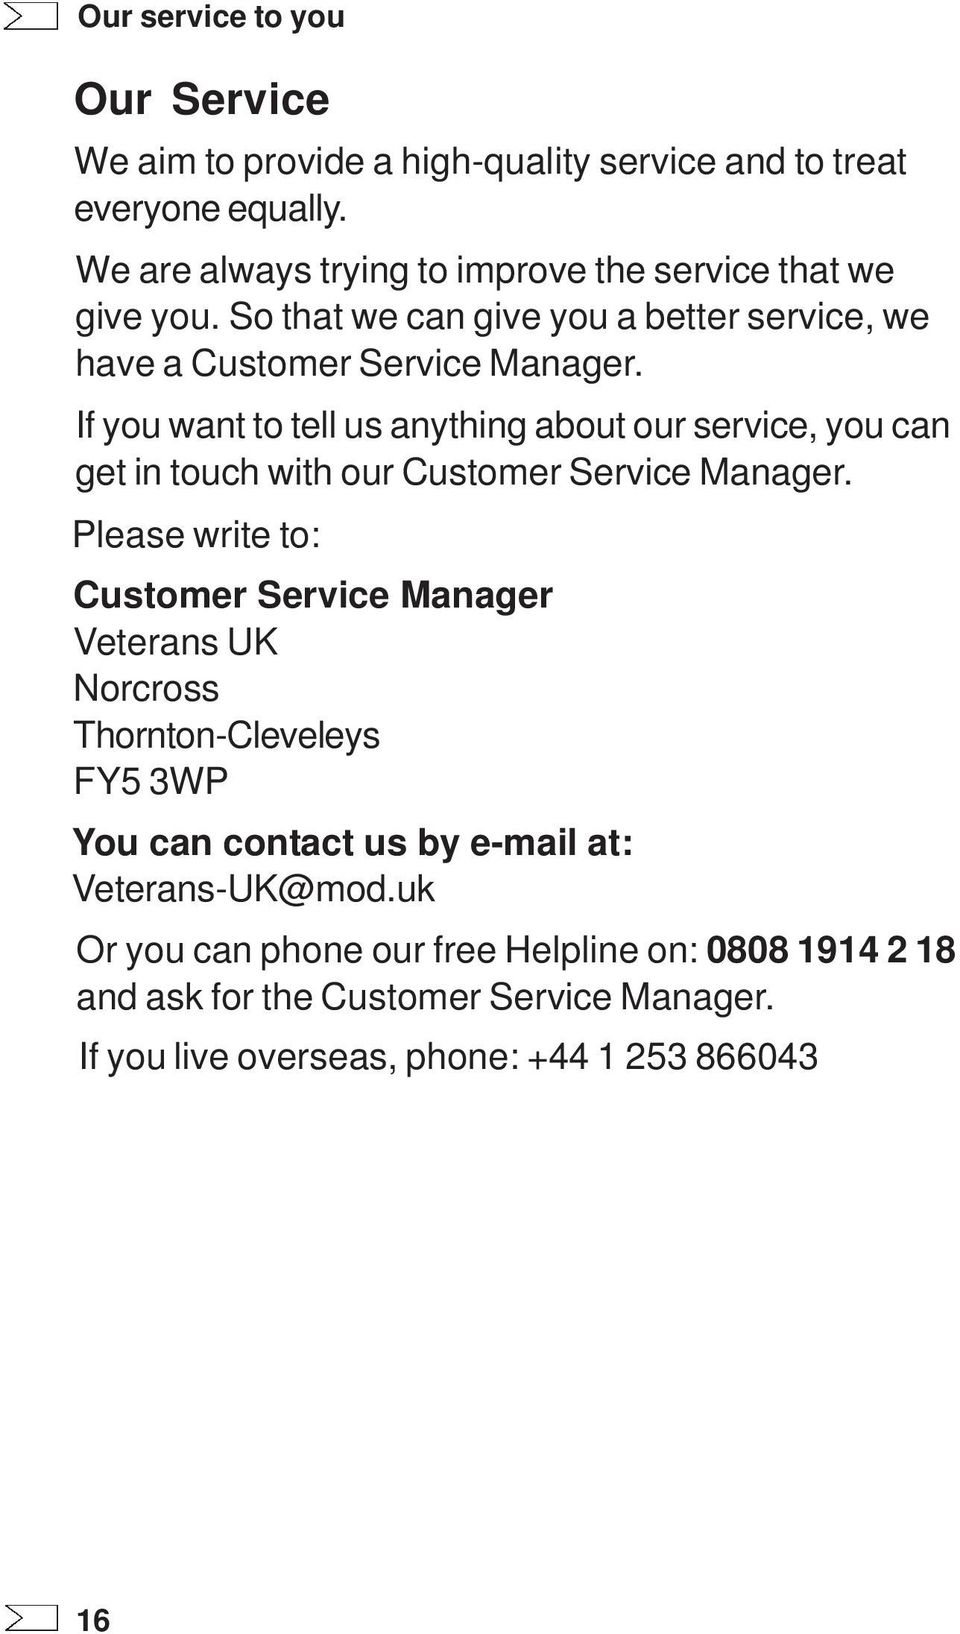 If you want to tell us anything about our service, you can get in touch with our Customer Service Manager.